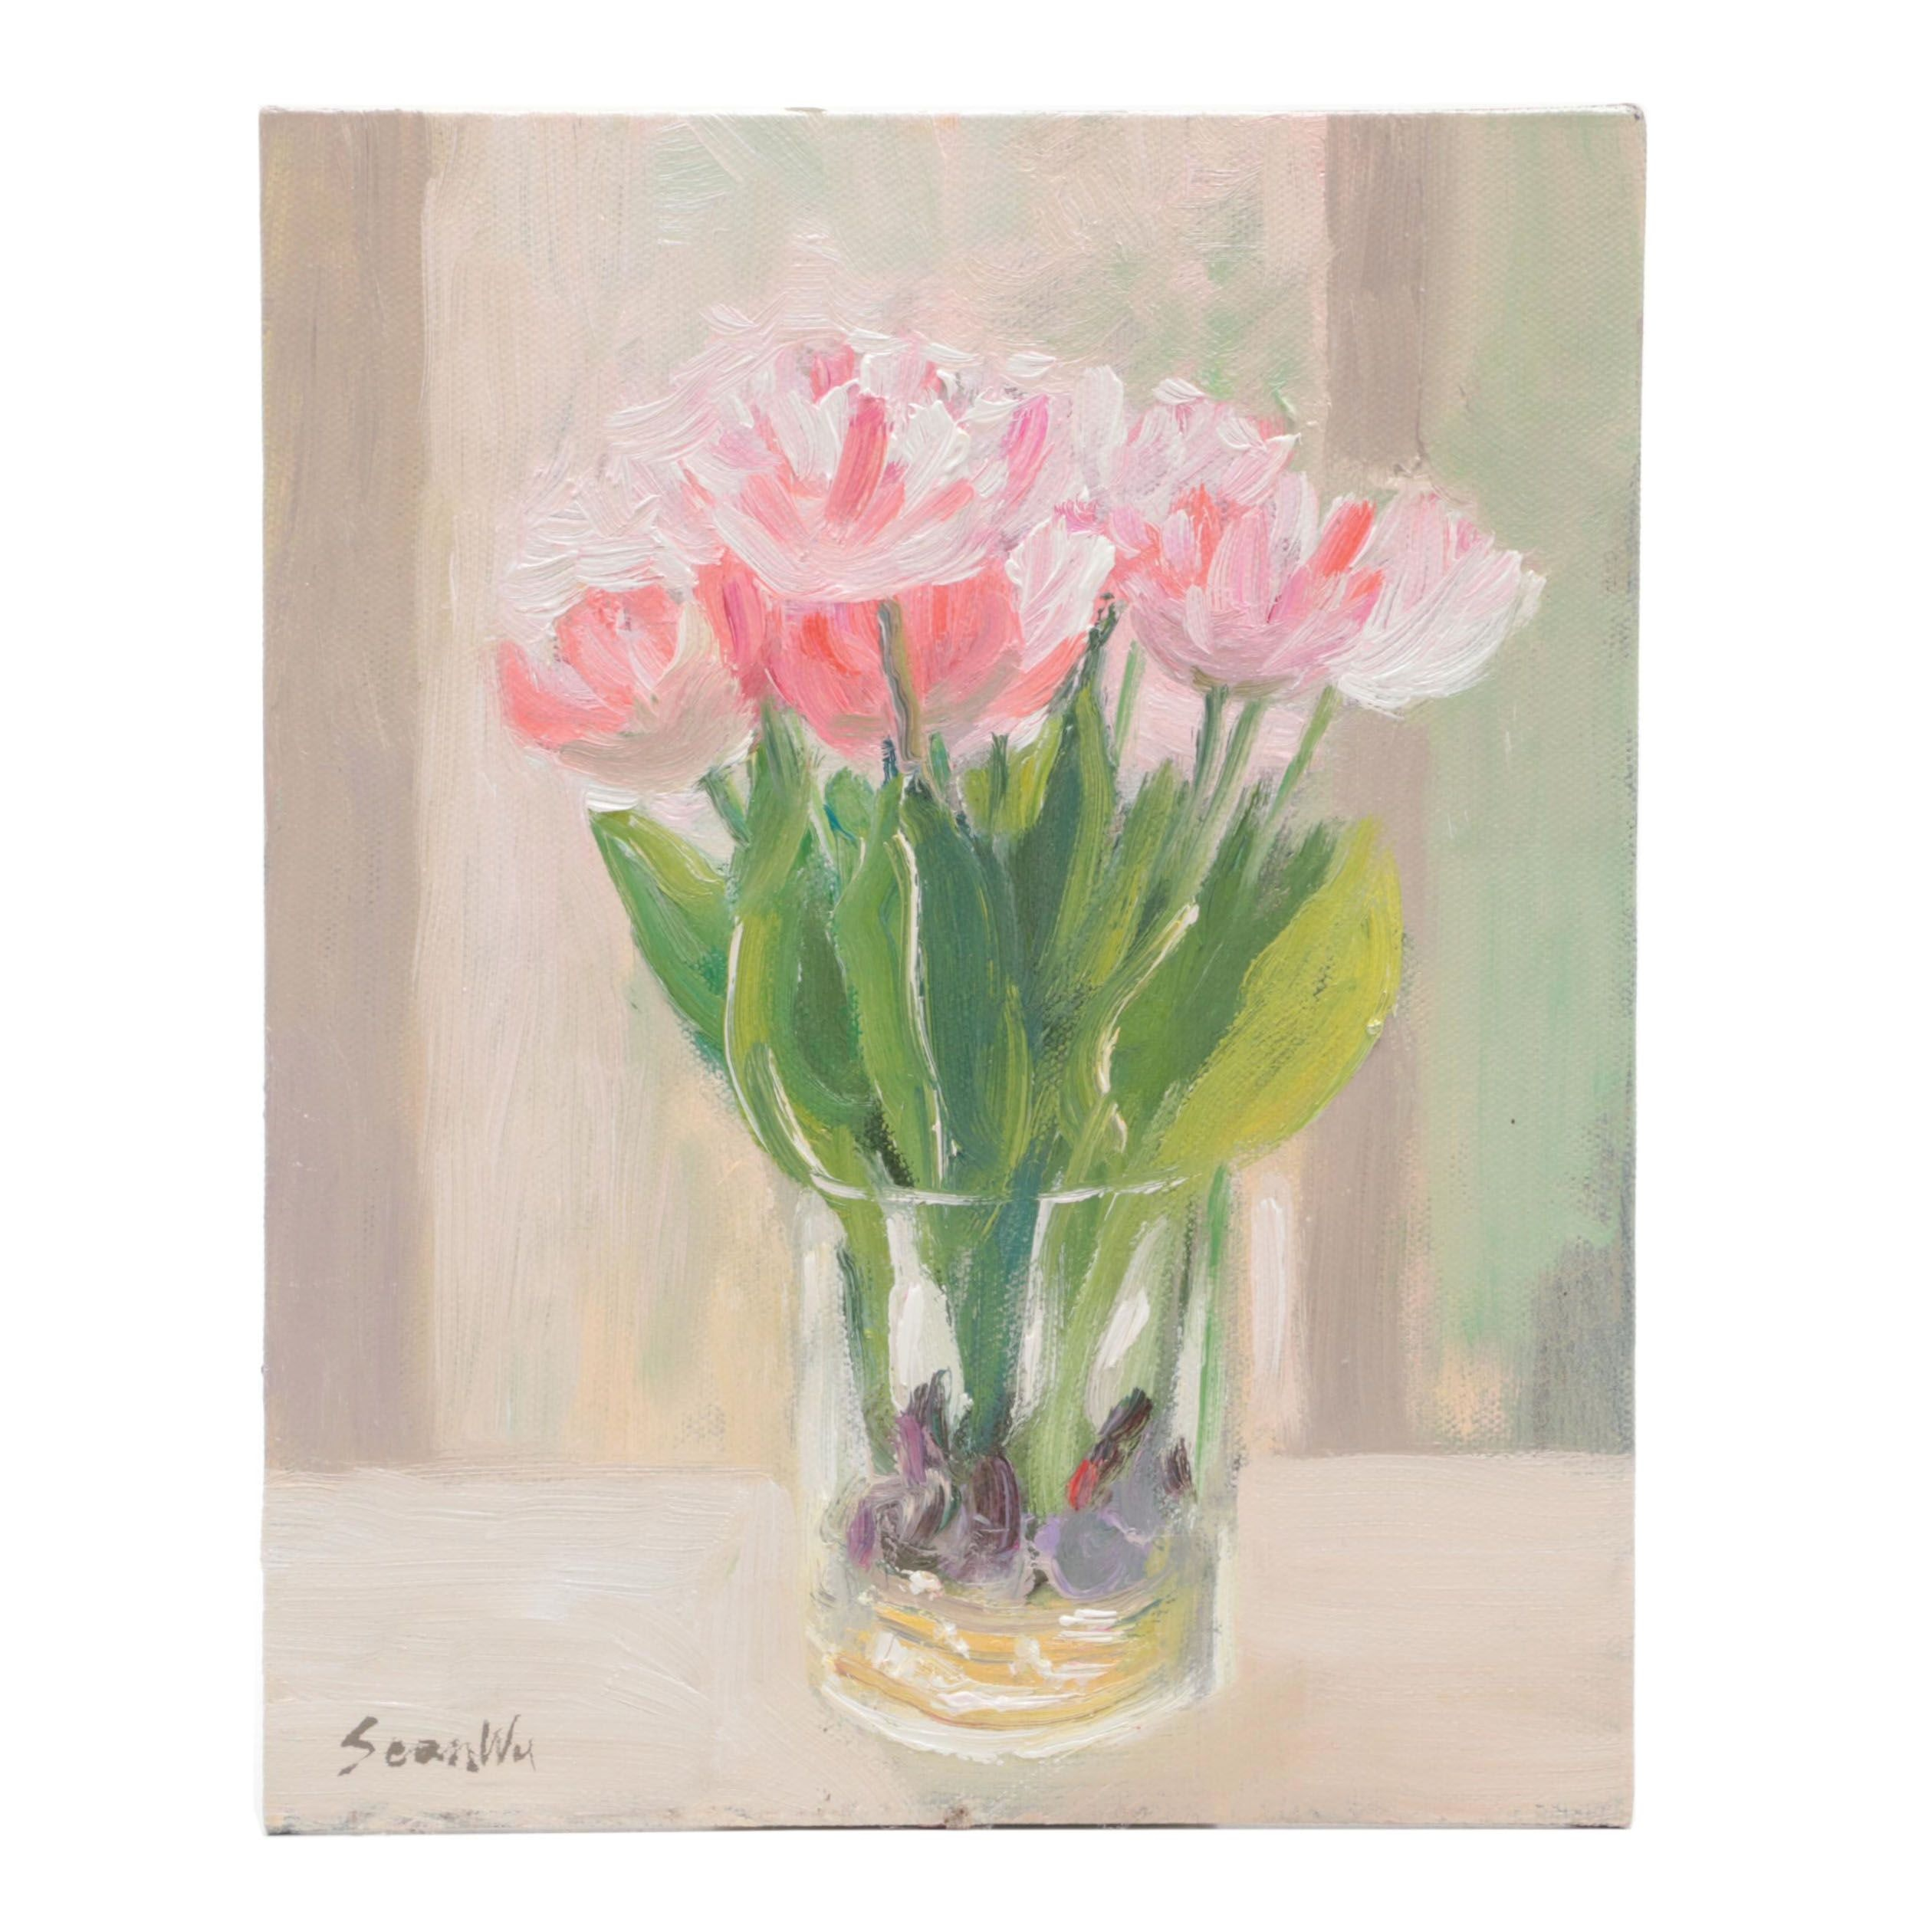 Sean Wu Floral Oil Painting